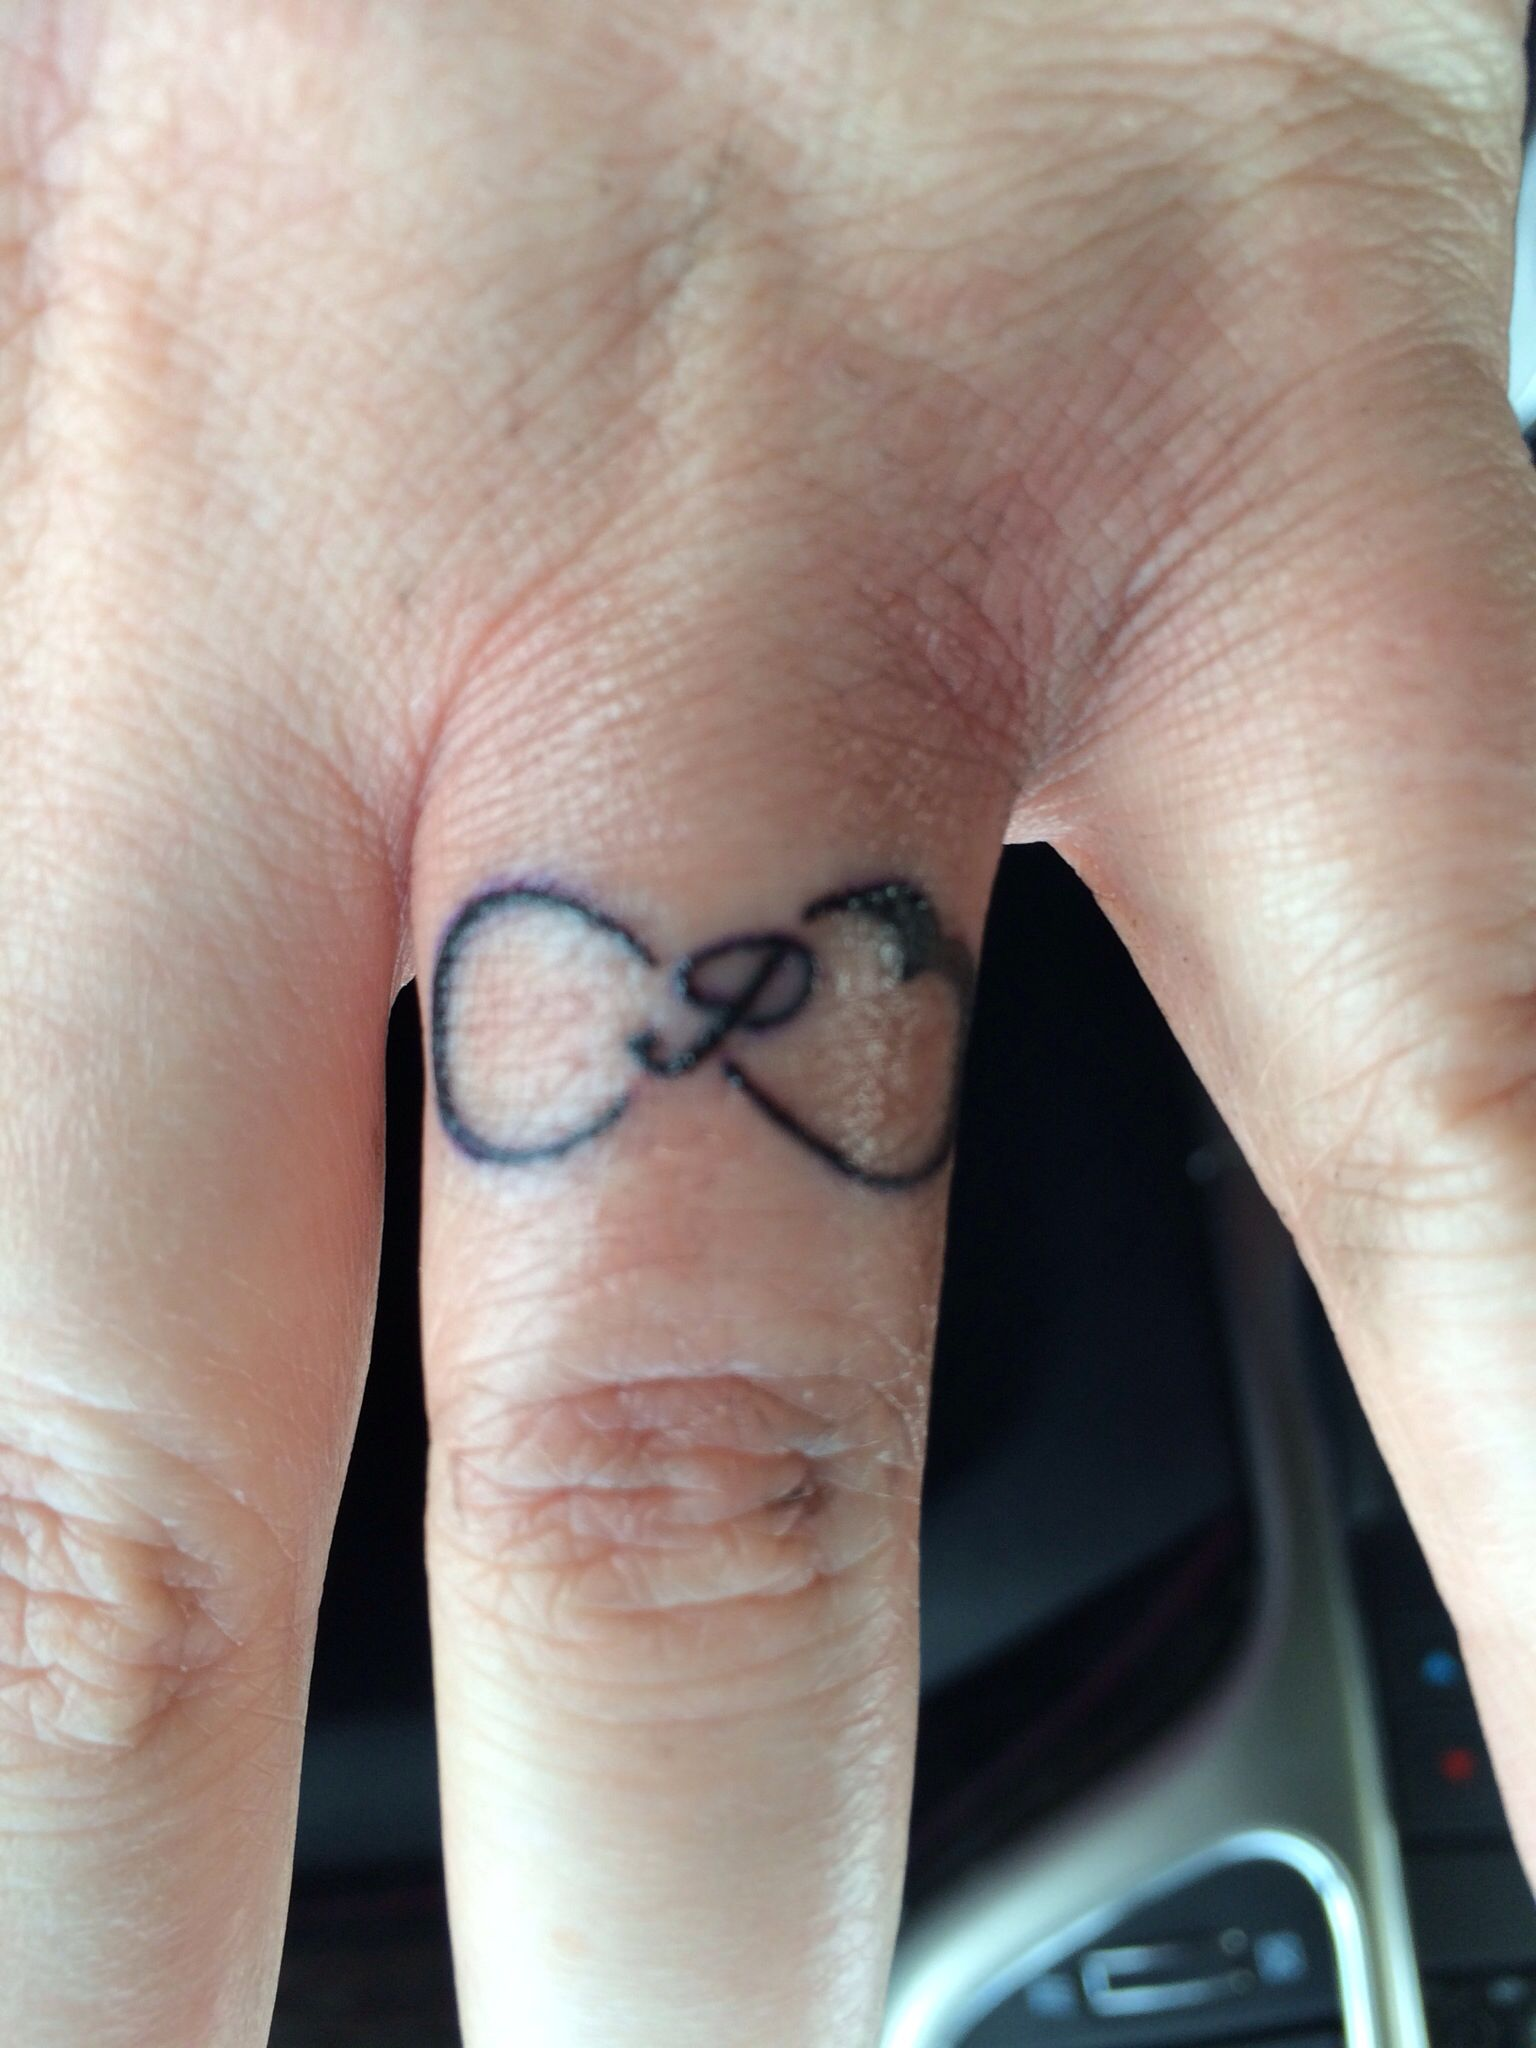 infinity, heart, and last name initial ring tattoo i love it